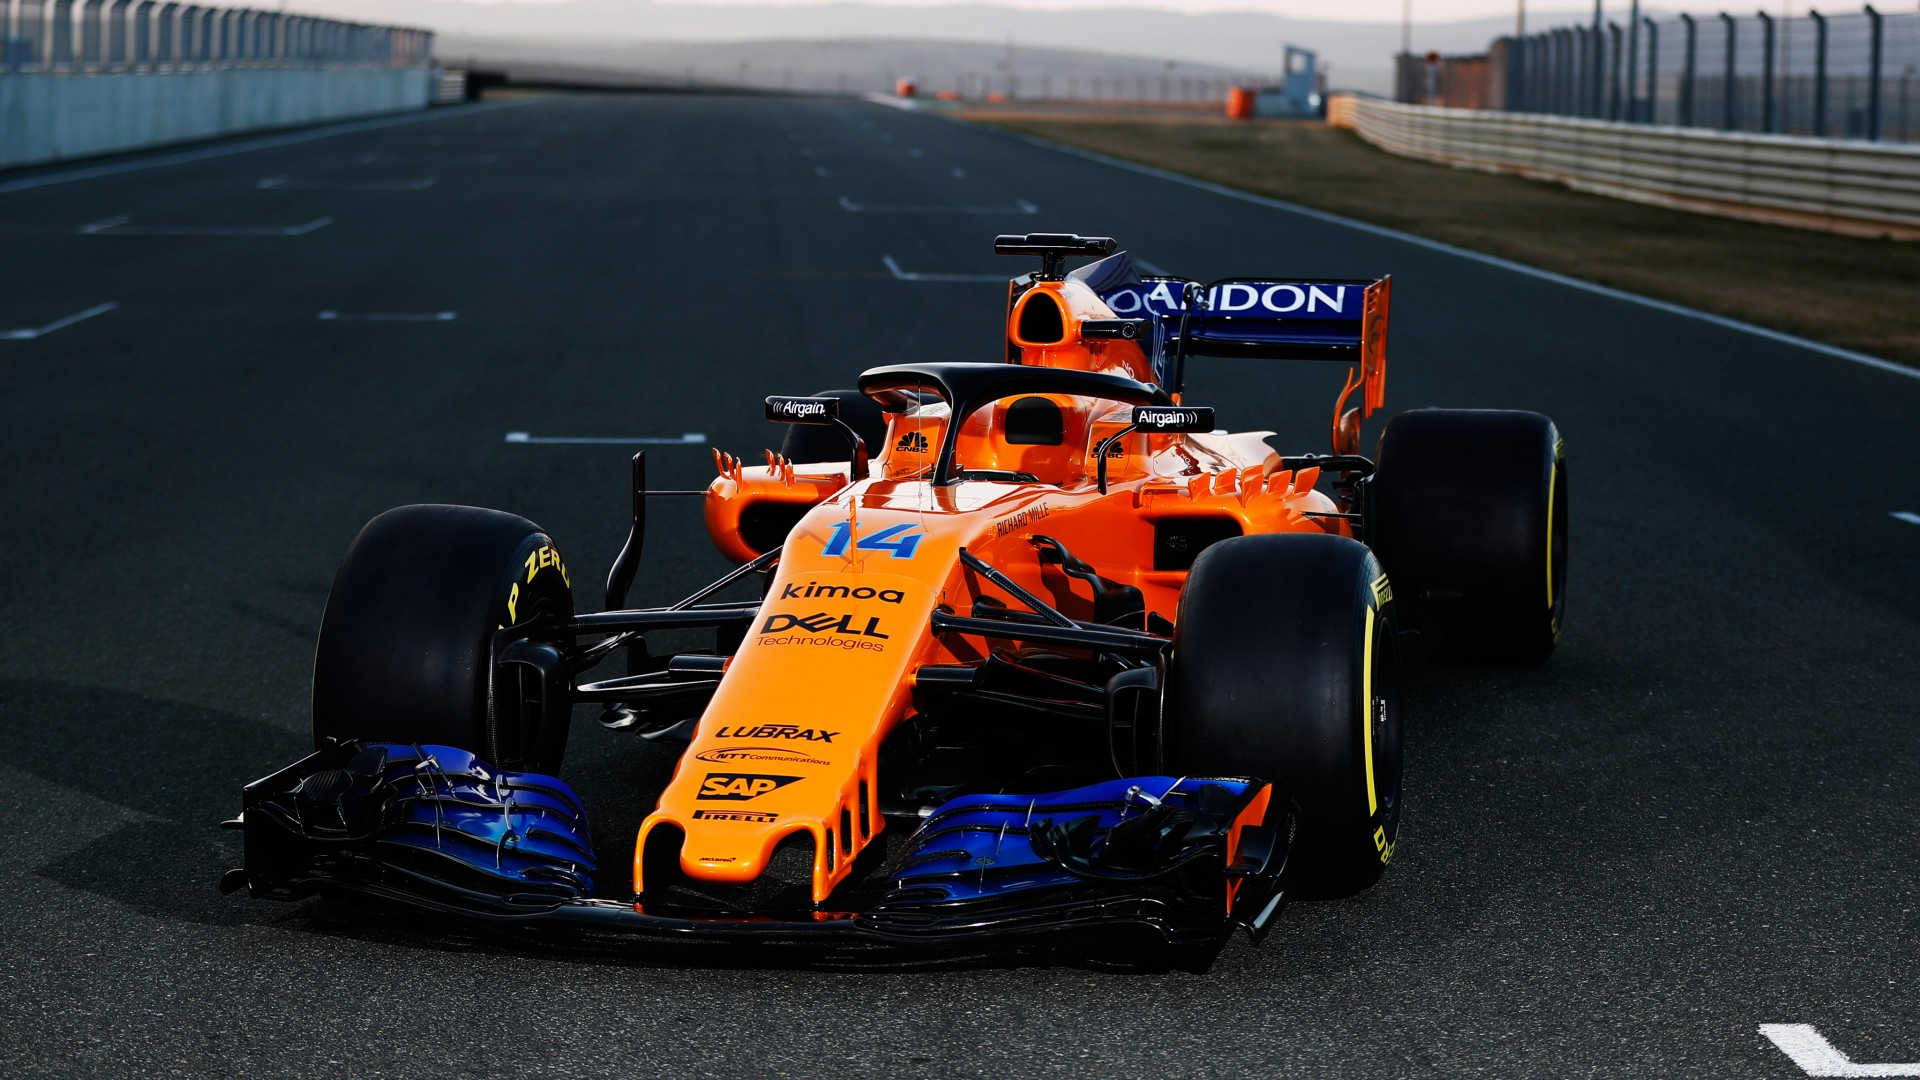 2018 McLaren MCL33 F1 Fomula 1 Car 4K Wallpaper | HD Car ...